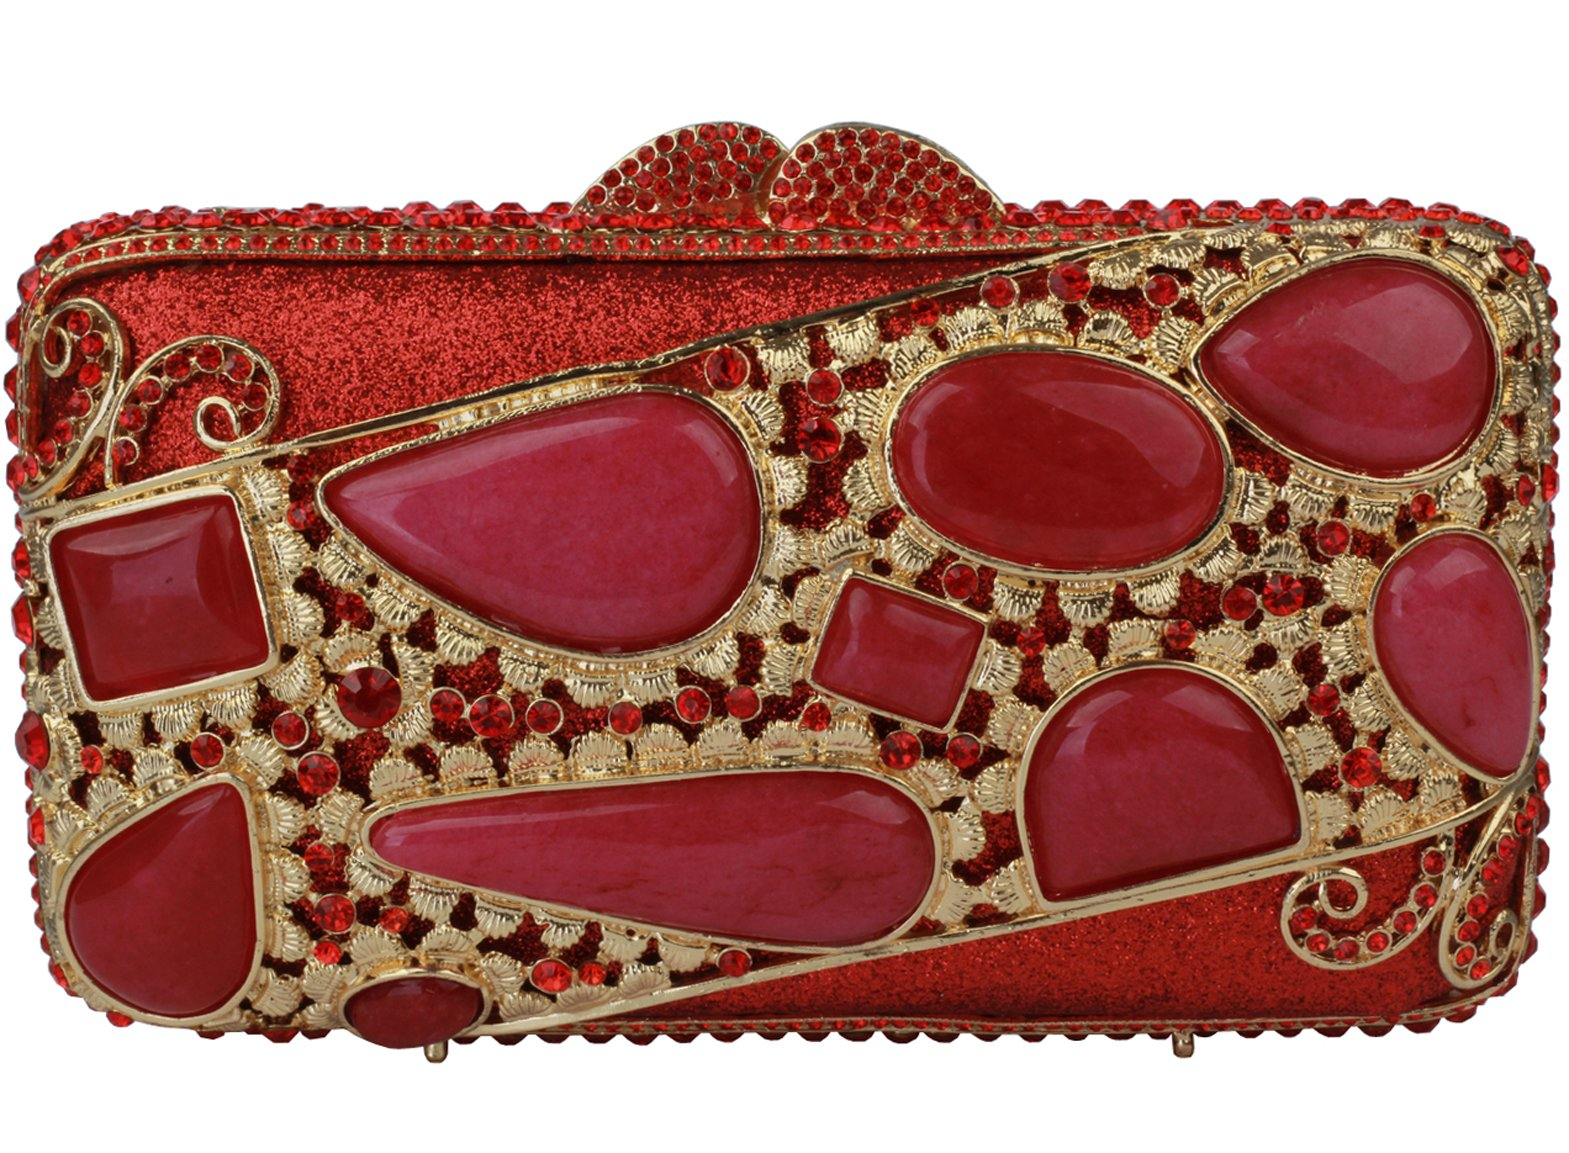 Yilongsheng Ladies New agate Evening Bags With Crystal For Wedding (Red)